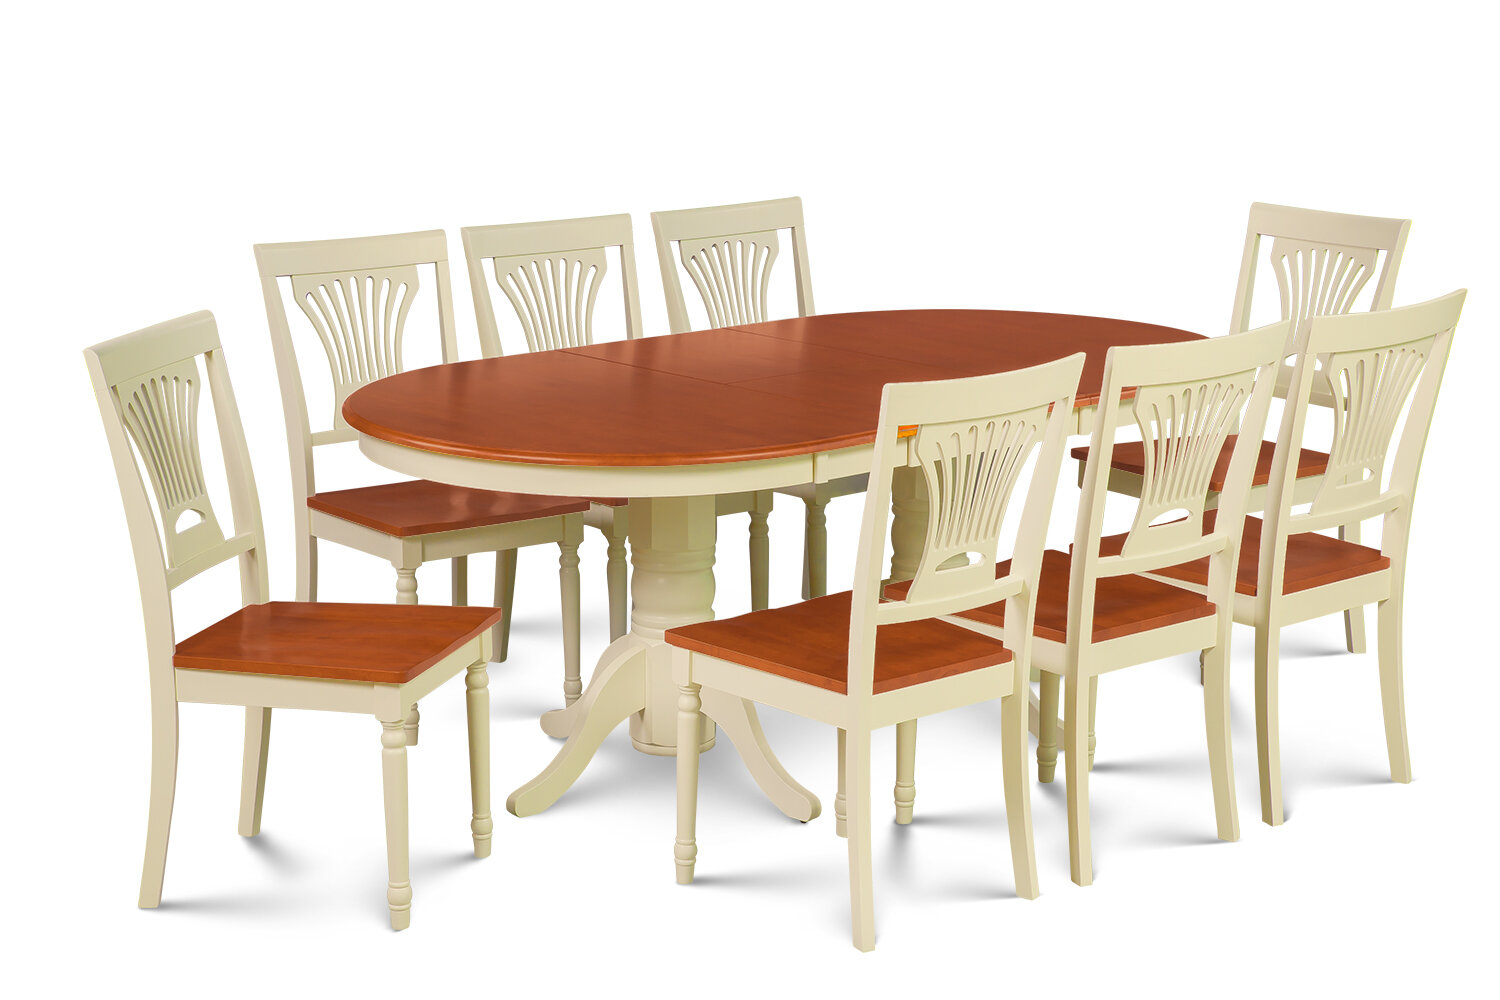 Darby Home Co Inwood 9 Piece Rubber Wood Dining Set | Wayfair